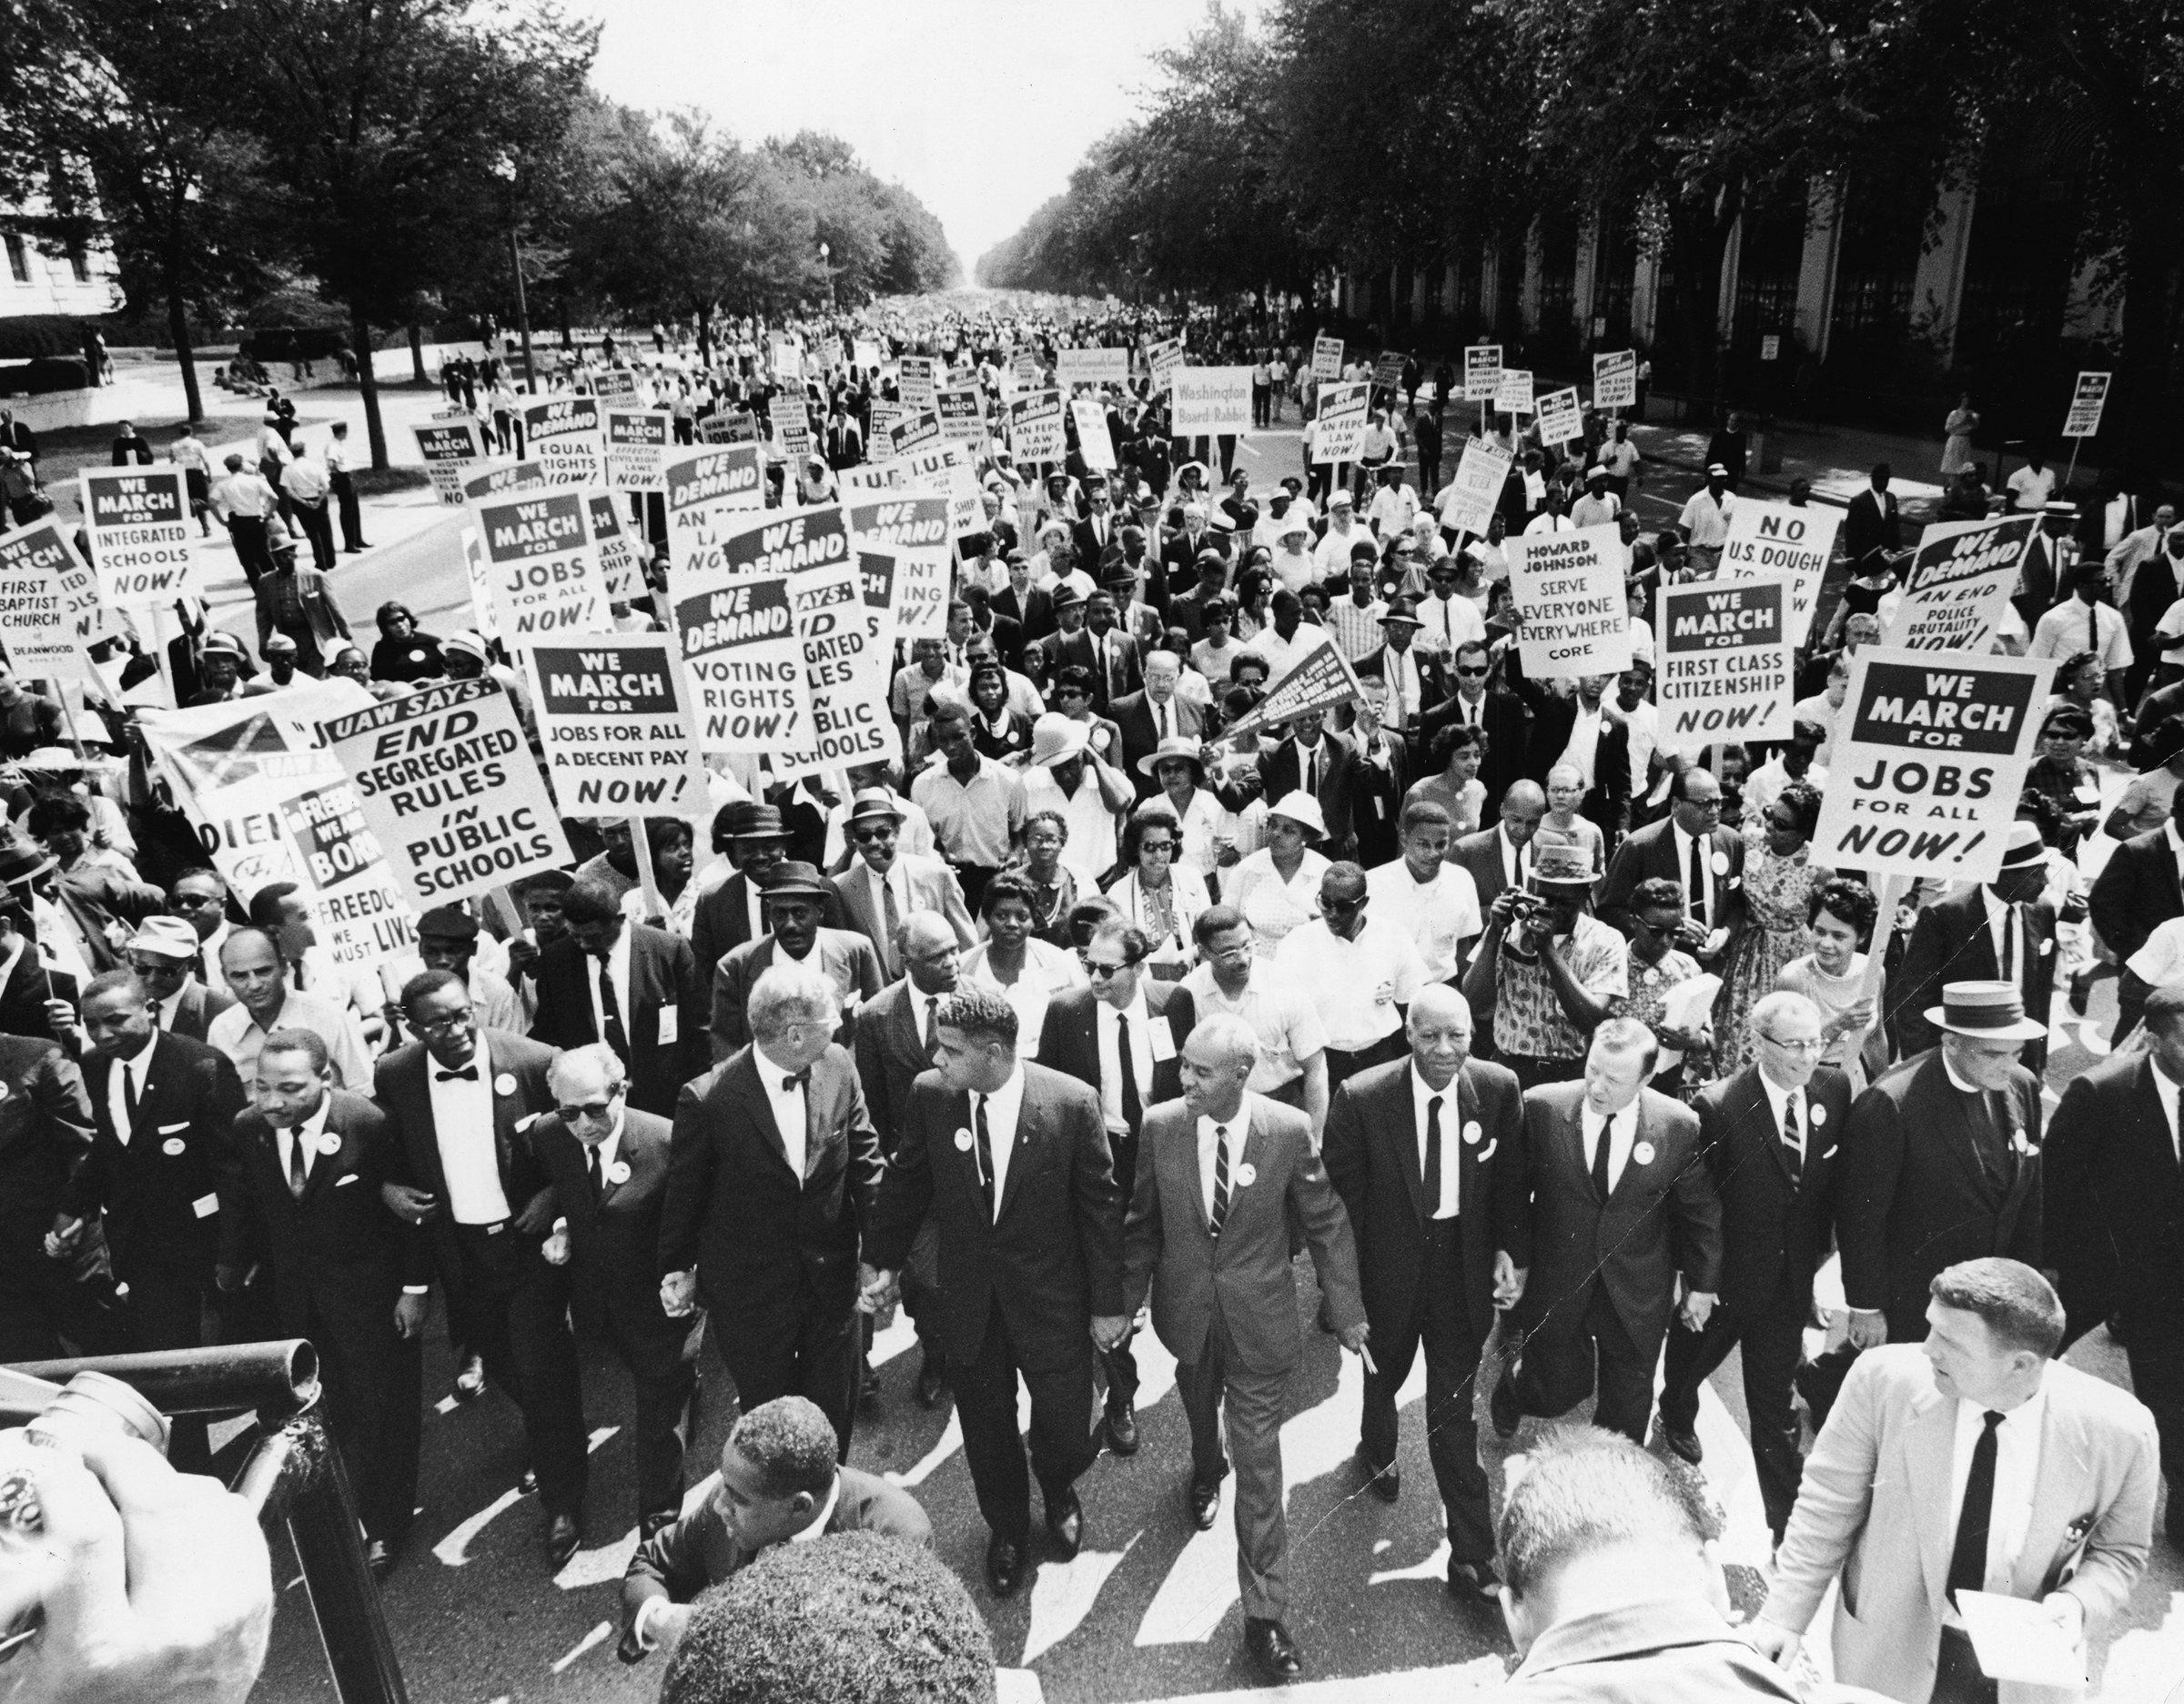 Civil rights leaders including James Meredith, Martin Luther King, Jr., Roy Wilkins, A. Phillip Randolph, and Walther Reuther, hold hands as they lead a crowd at the March on Washington in Washington D.C., Aug. 28, 1963